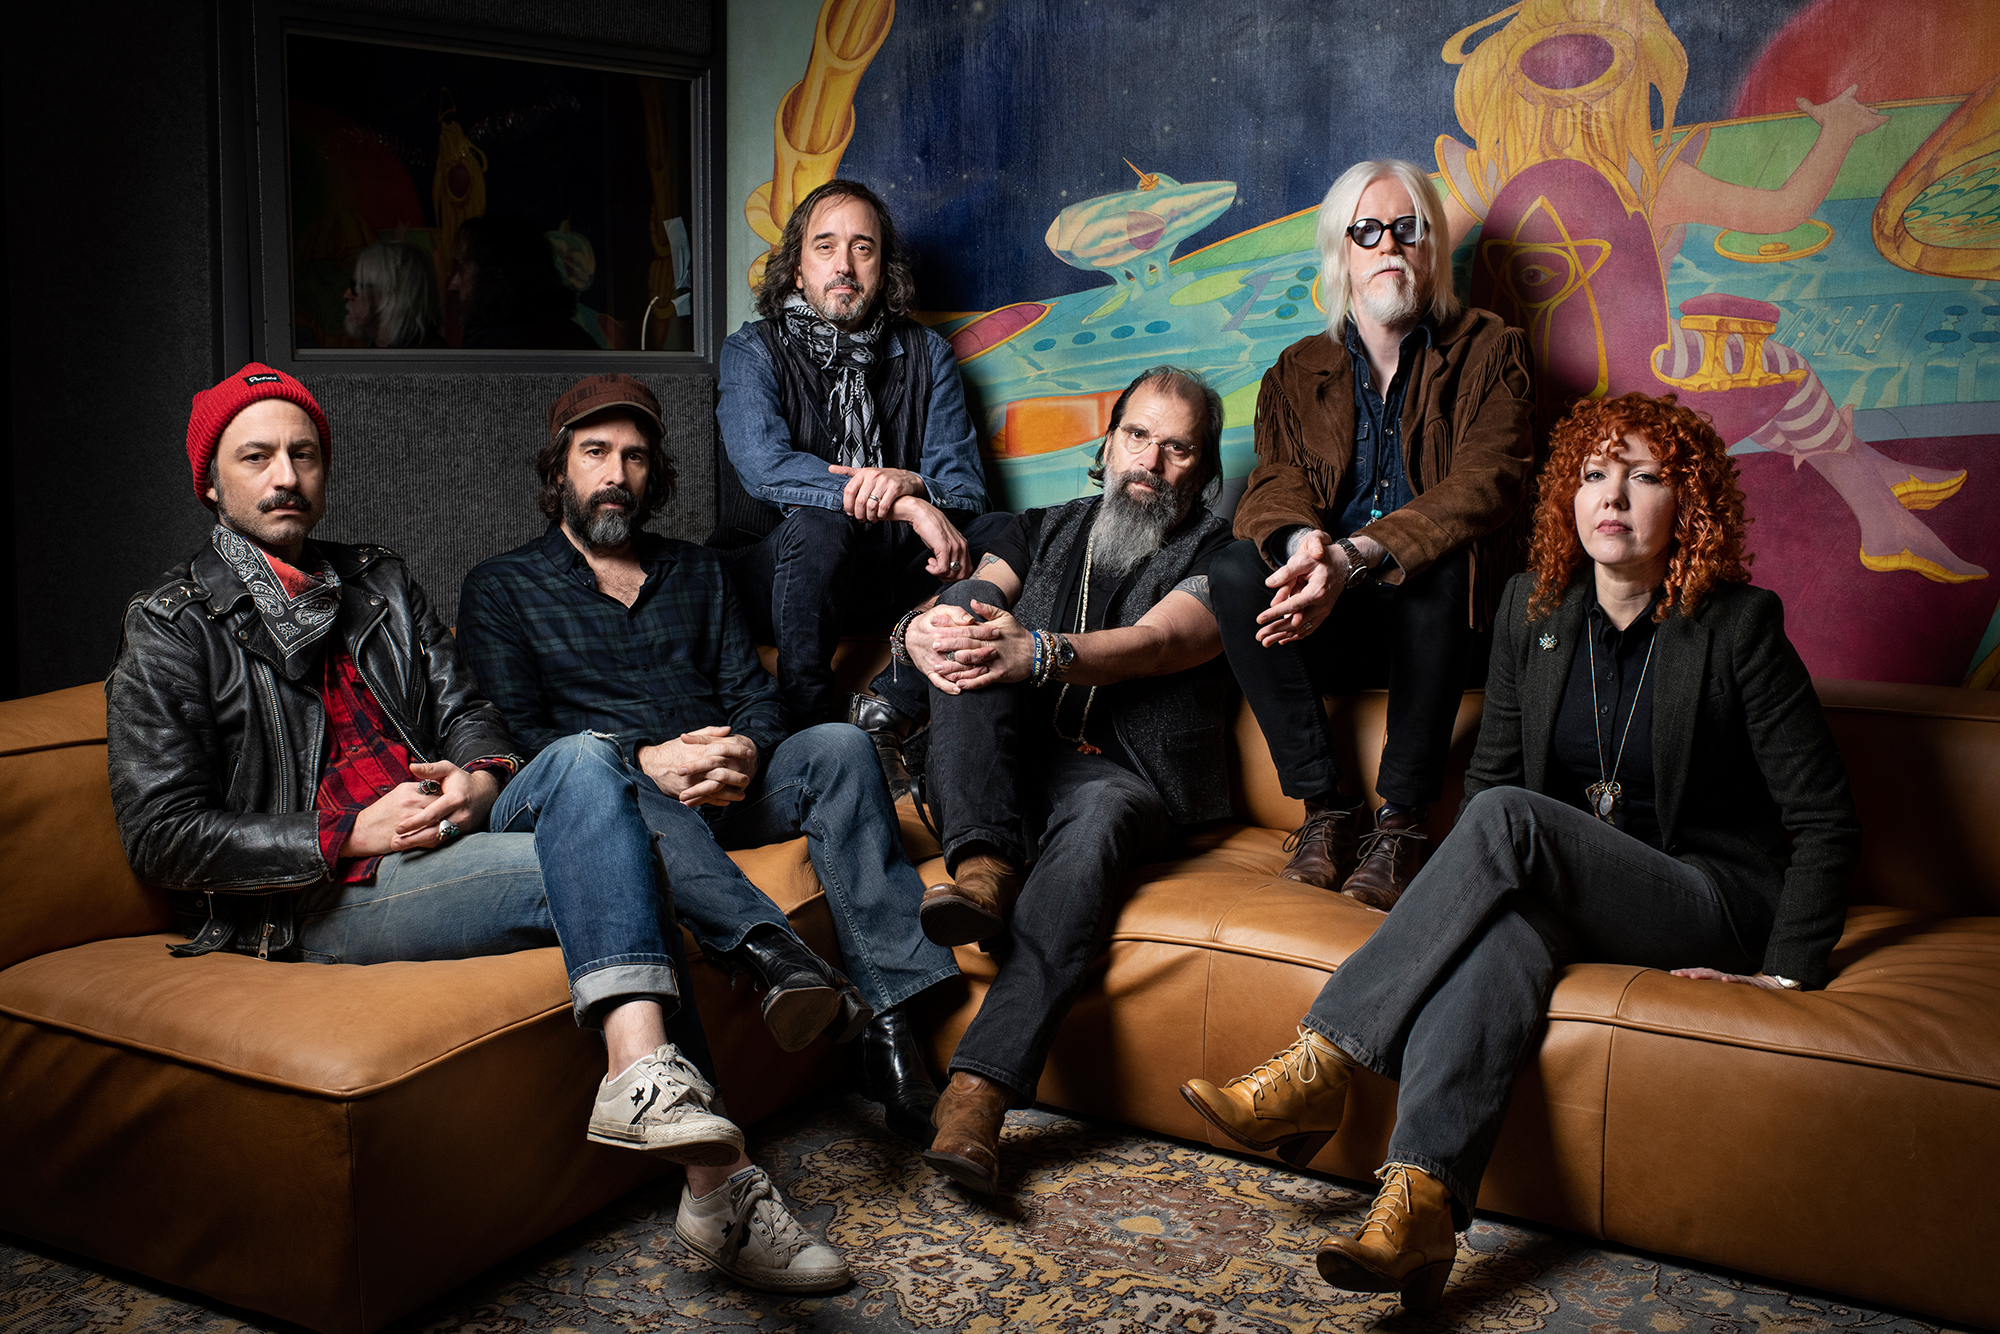 Steve Earle Previews New Album With Miners' Ode 'Devil Put the Coal in the Ground'